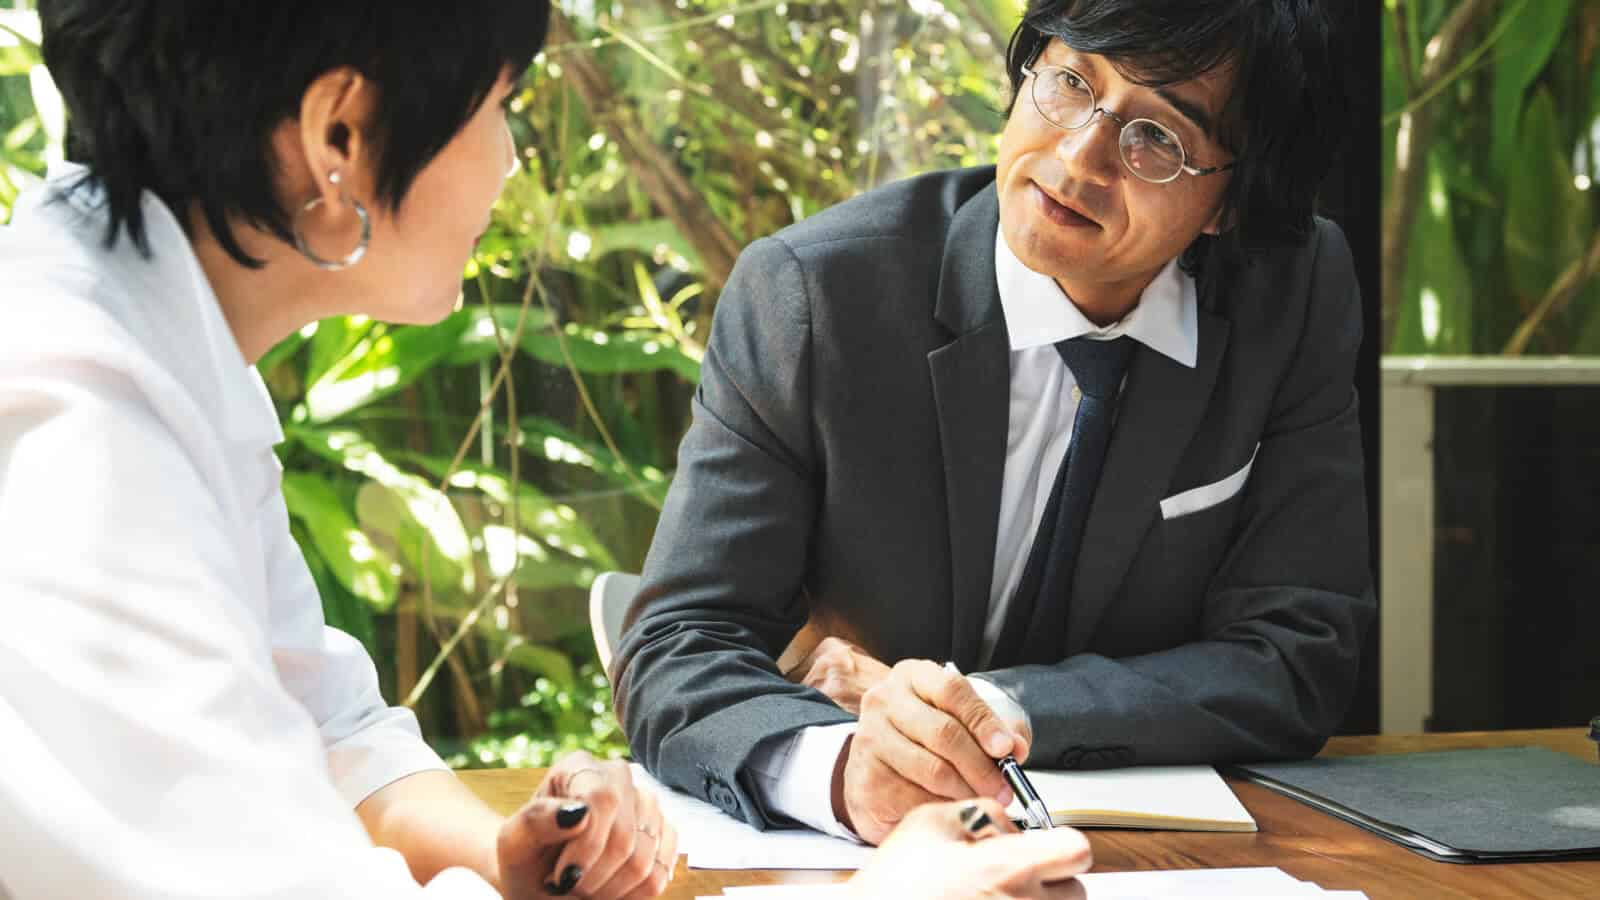 Figure out the legal aspects of running a consultancy business